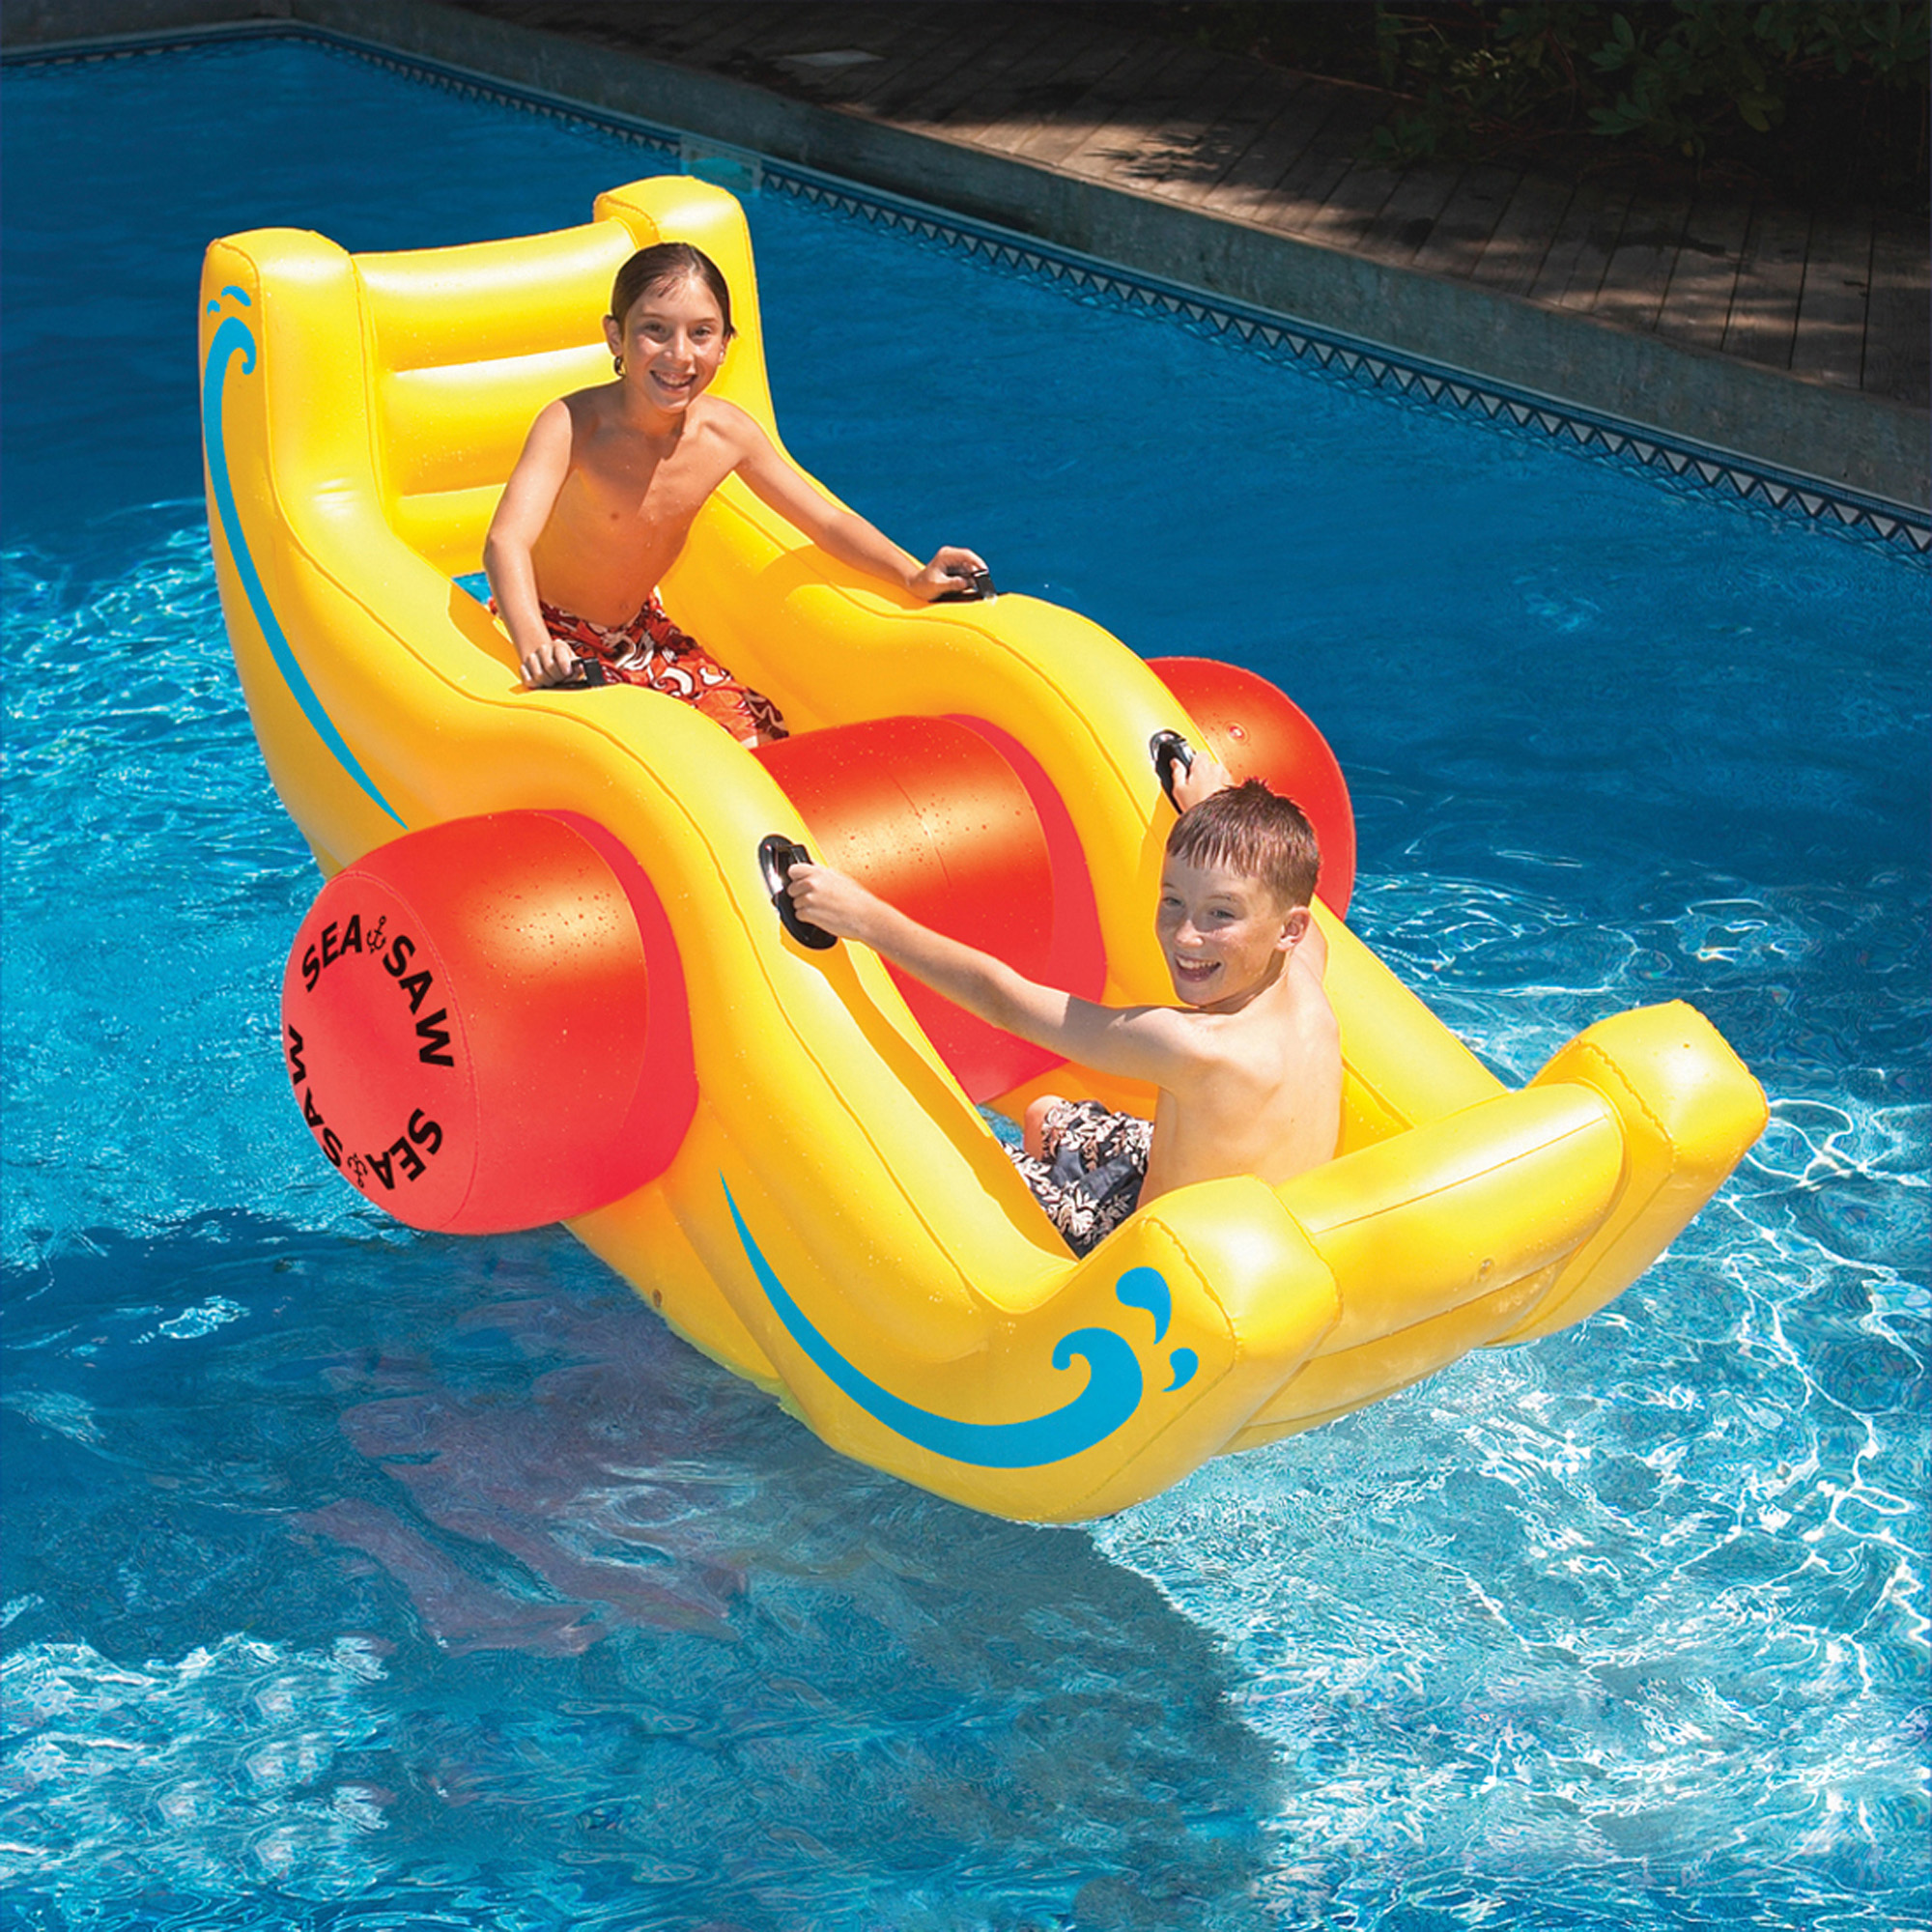 Swimline Sea-Saw Rocker Inflatable Pool Toy by Blue Wave